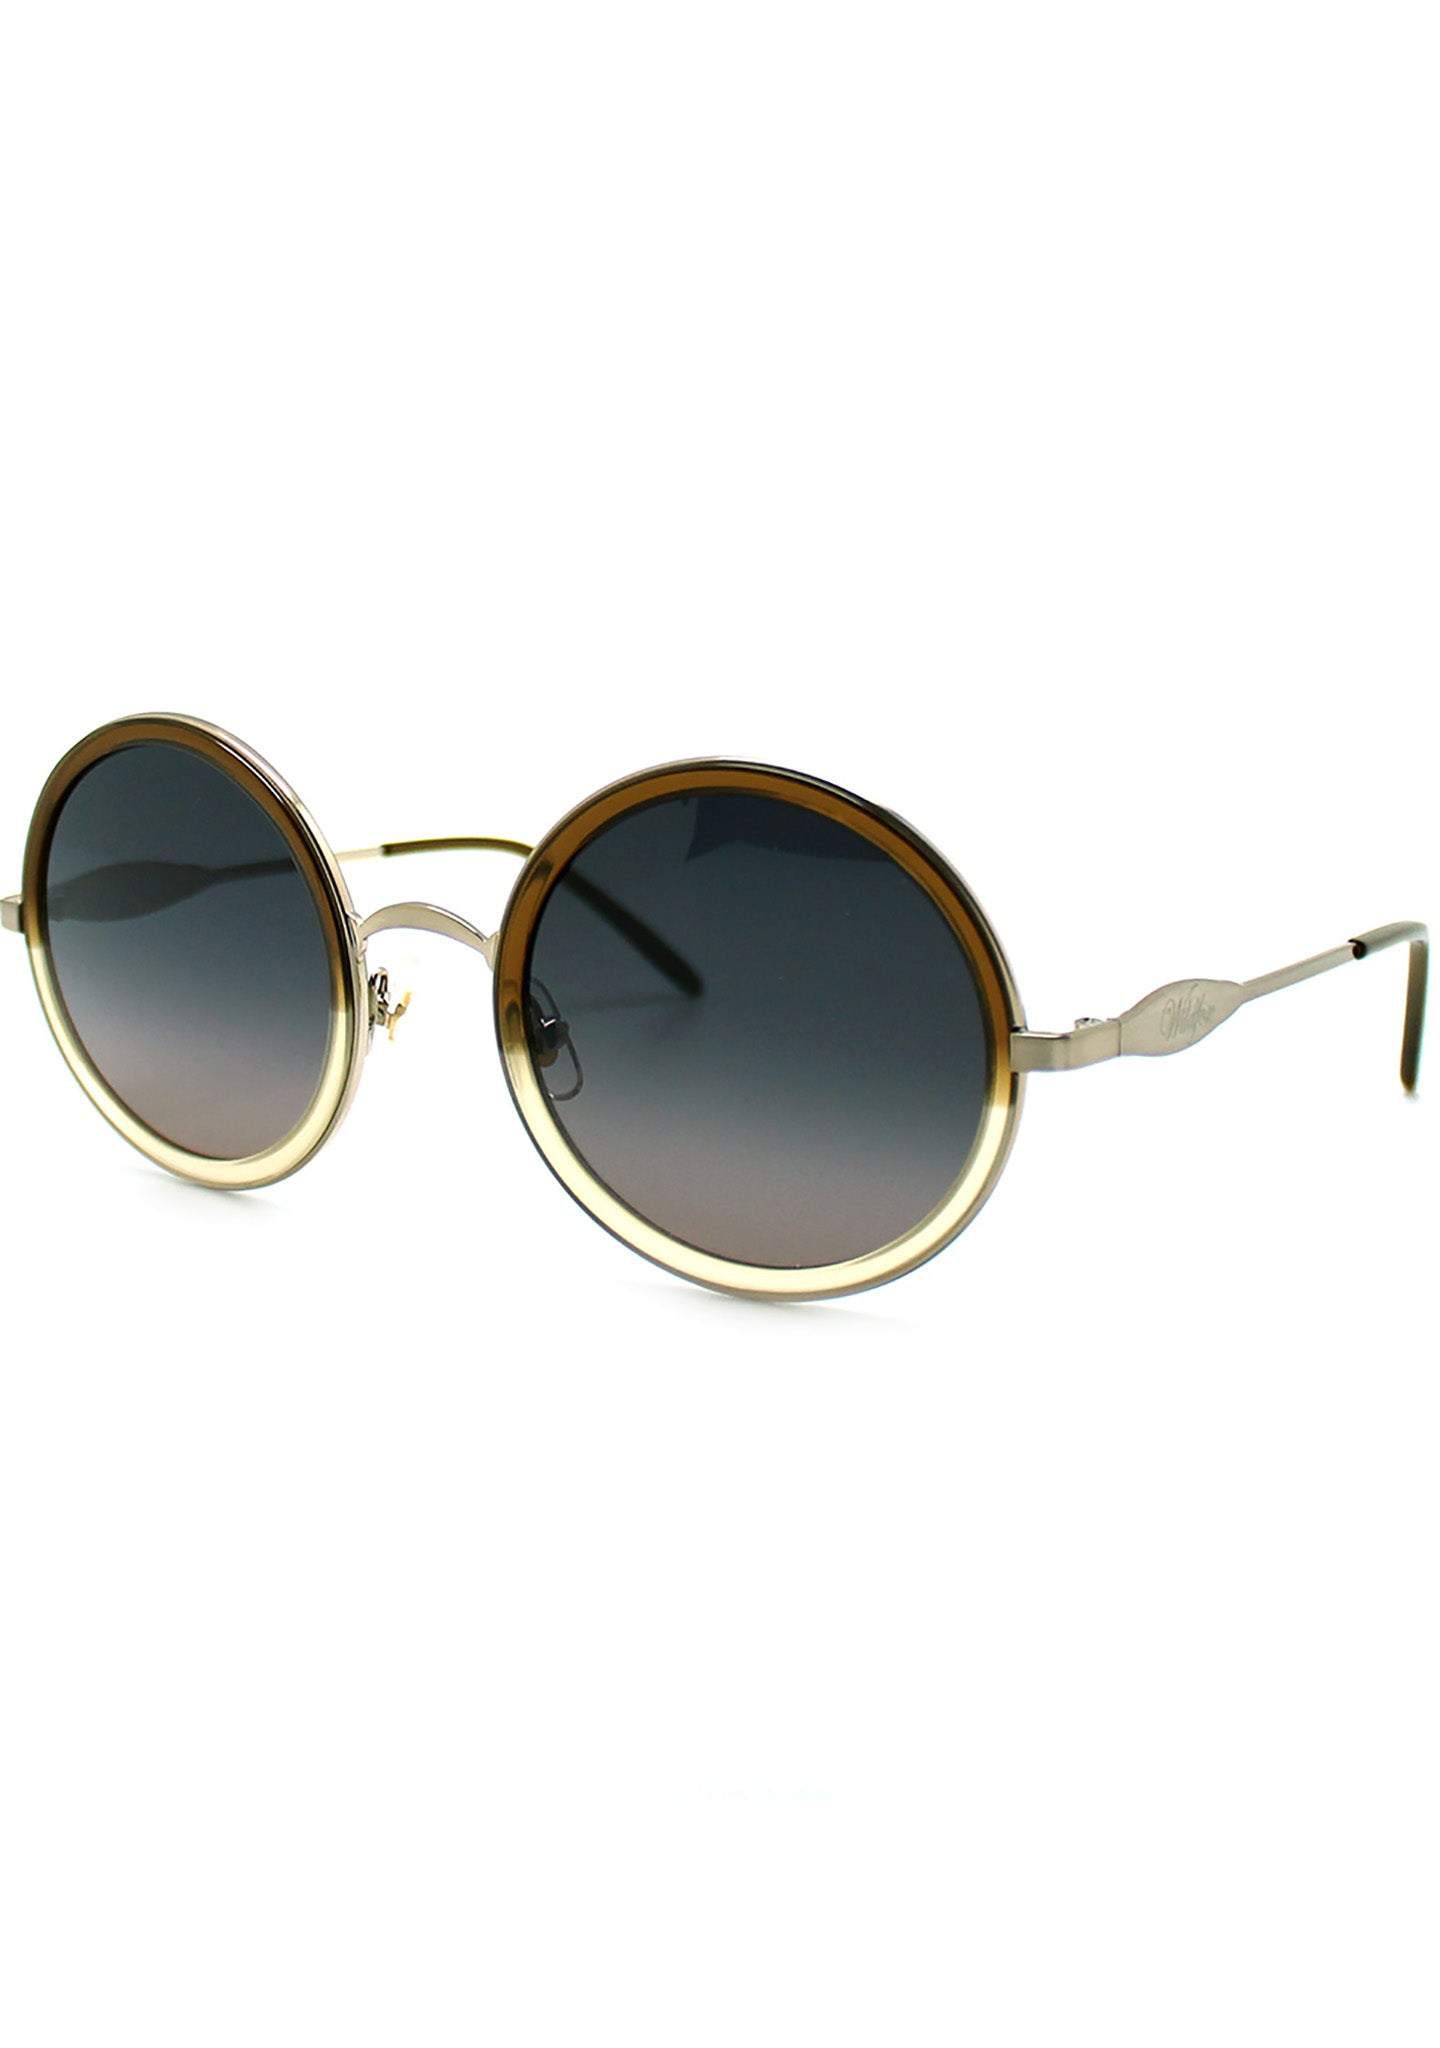 Wildfox Sun Ryder Sunglasses in Sundown